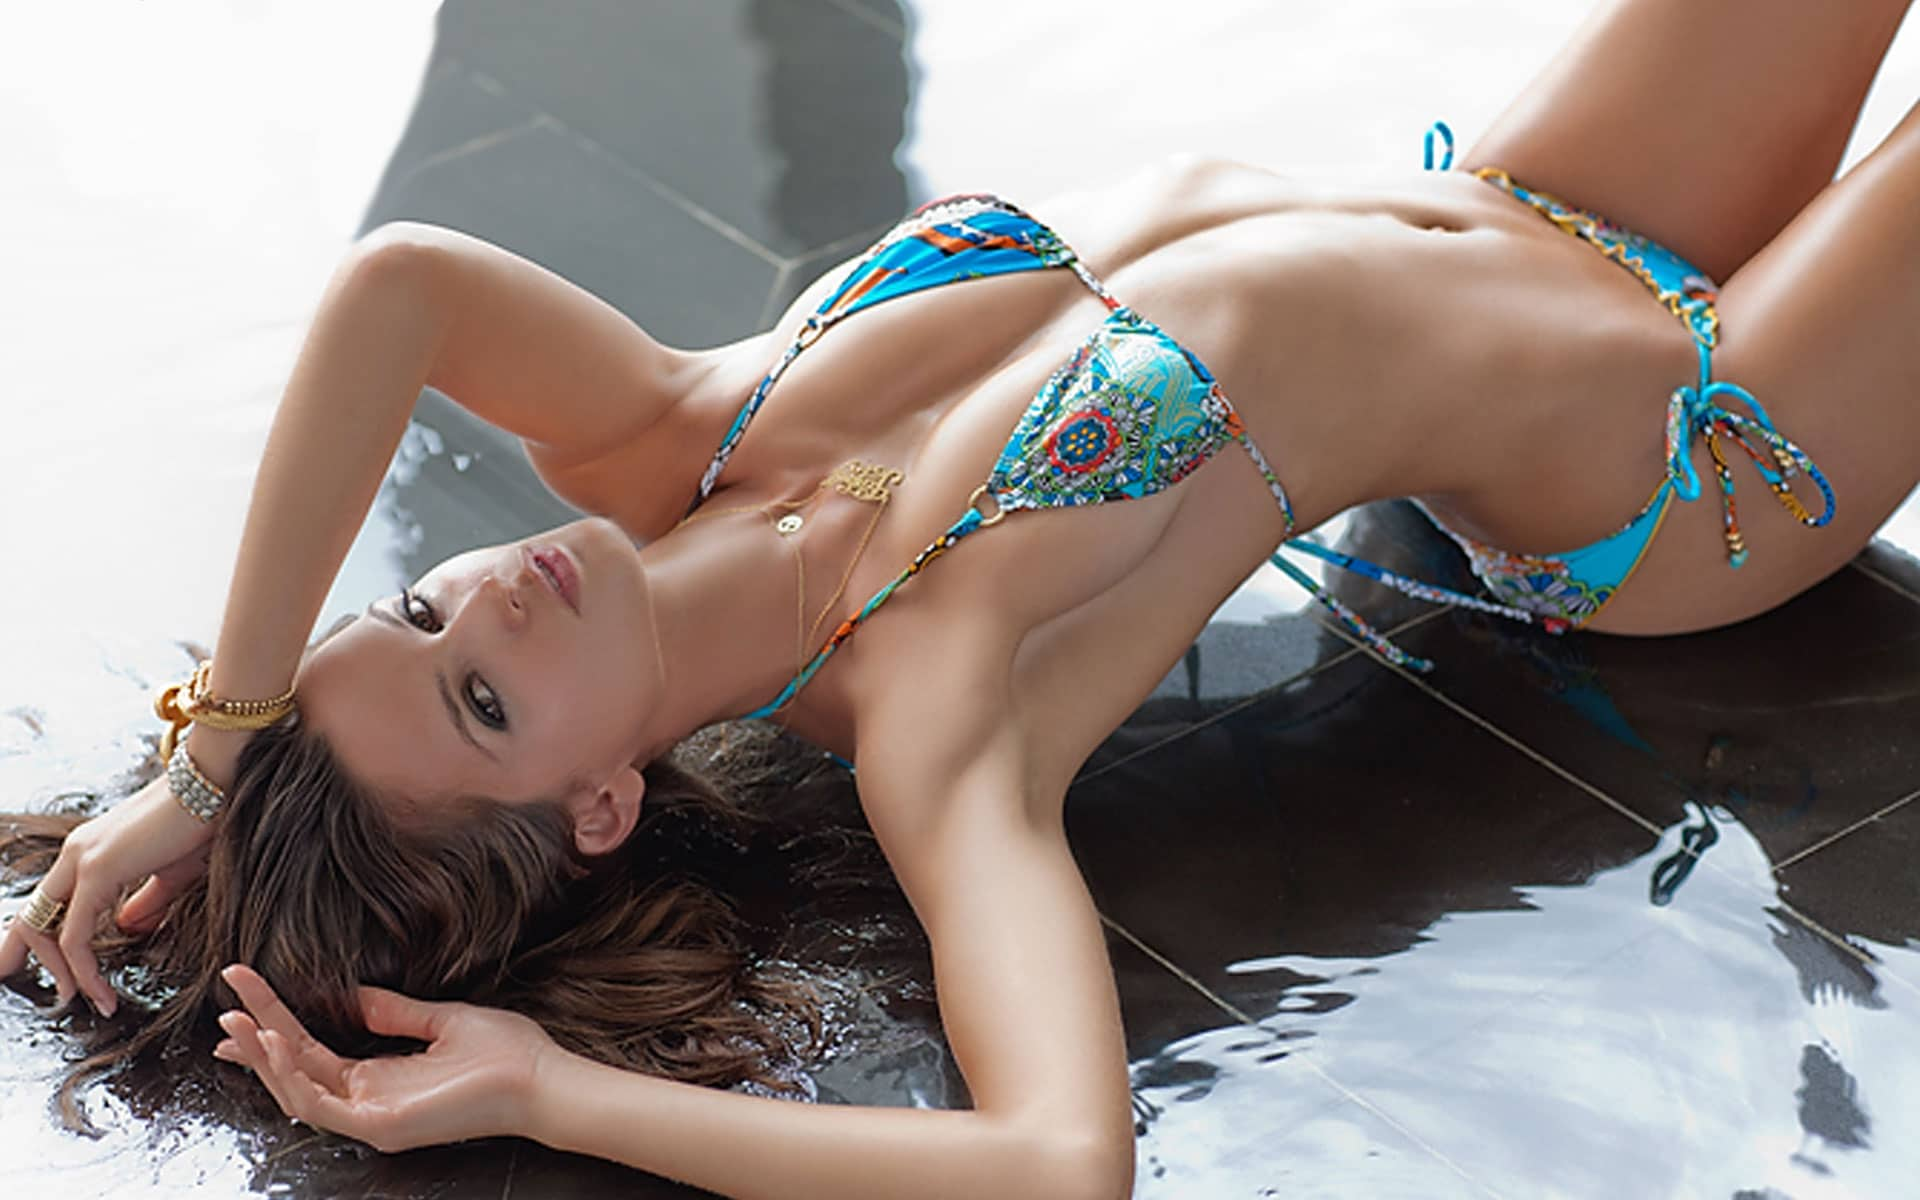 Izabel Goulart for Sports Illustrated magazine modeling a bikini on the floor